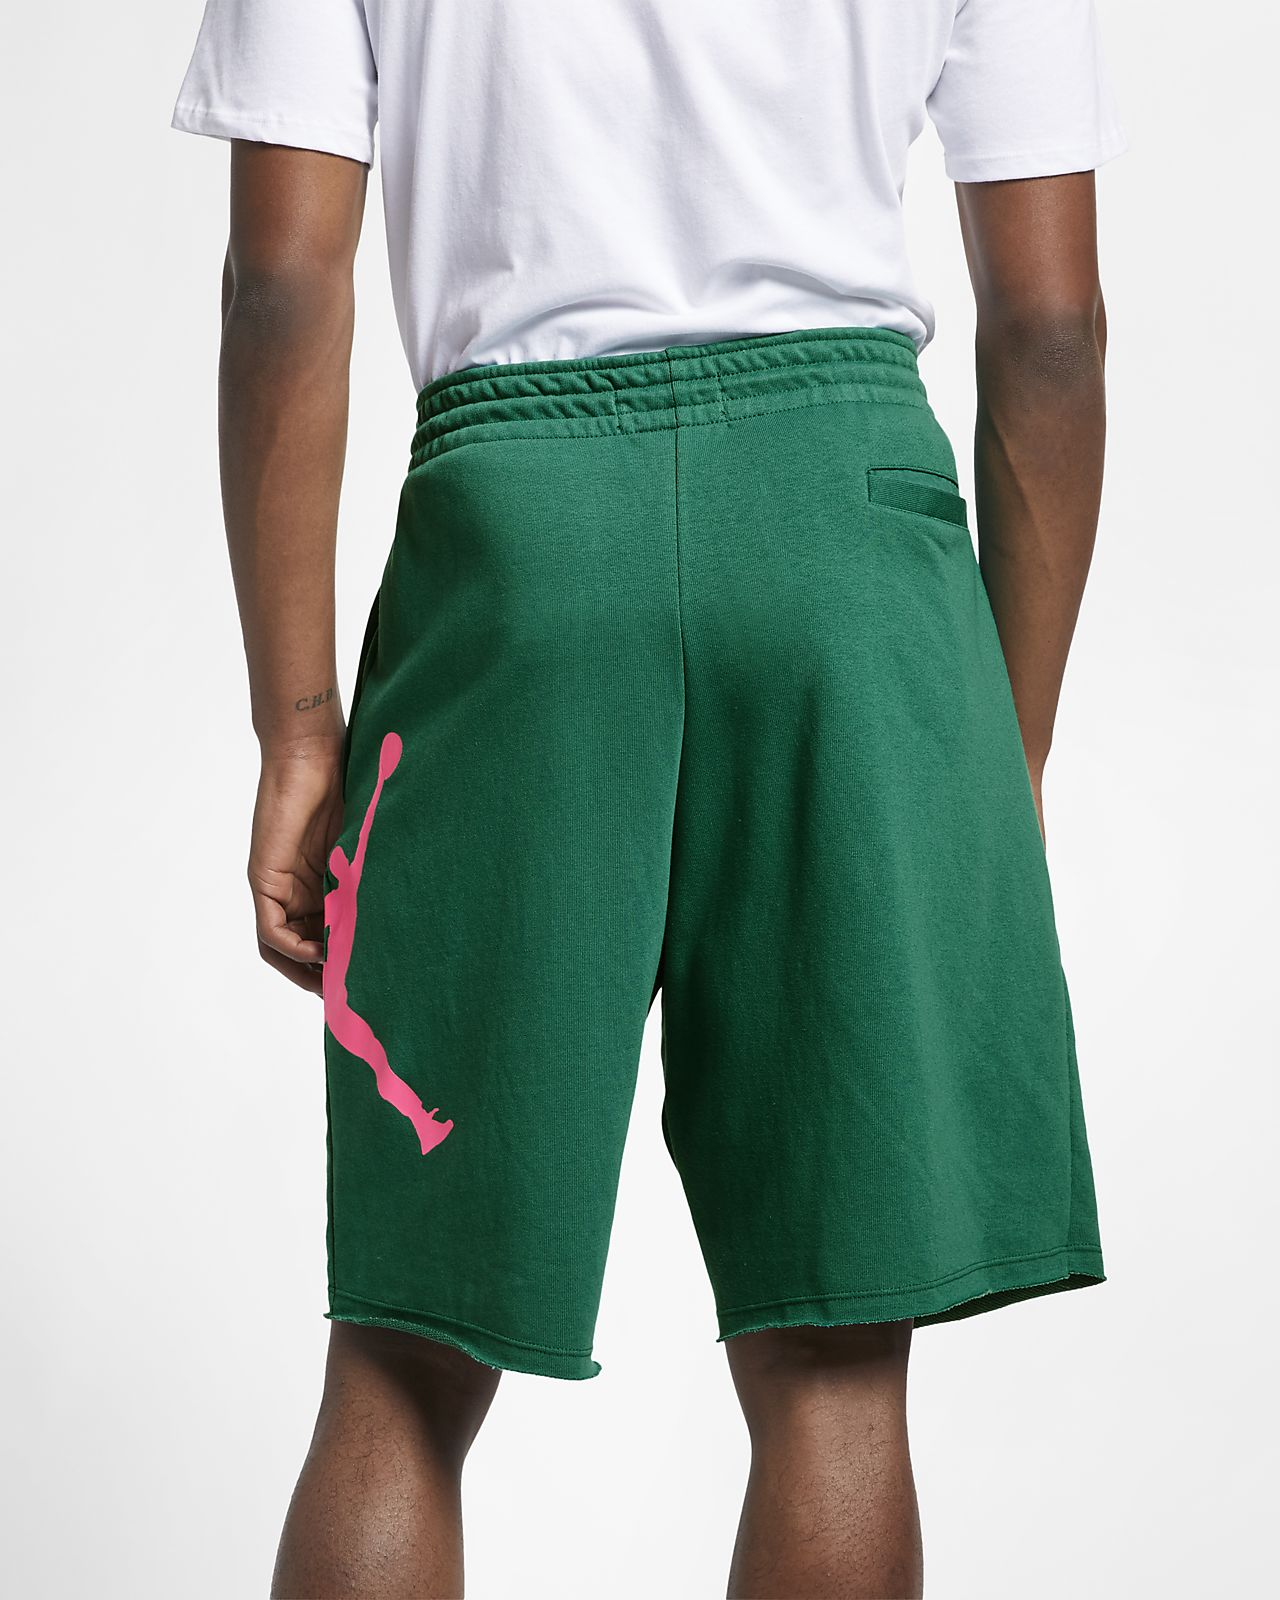 19a703ece9f2 Jordan Jumpman Logo Men s Fleece Shorts. Nike.com AT